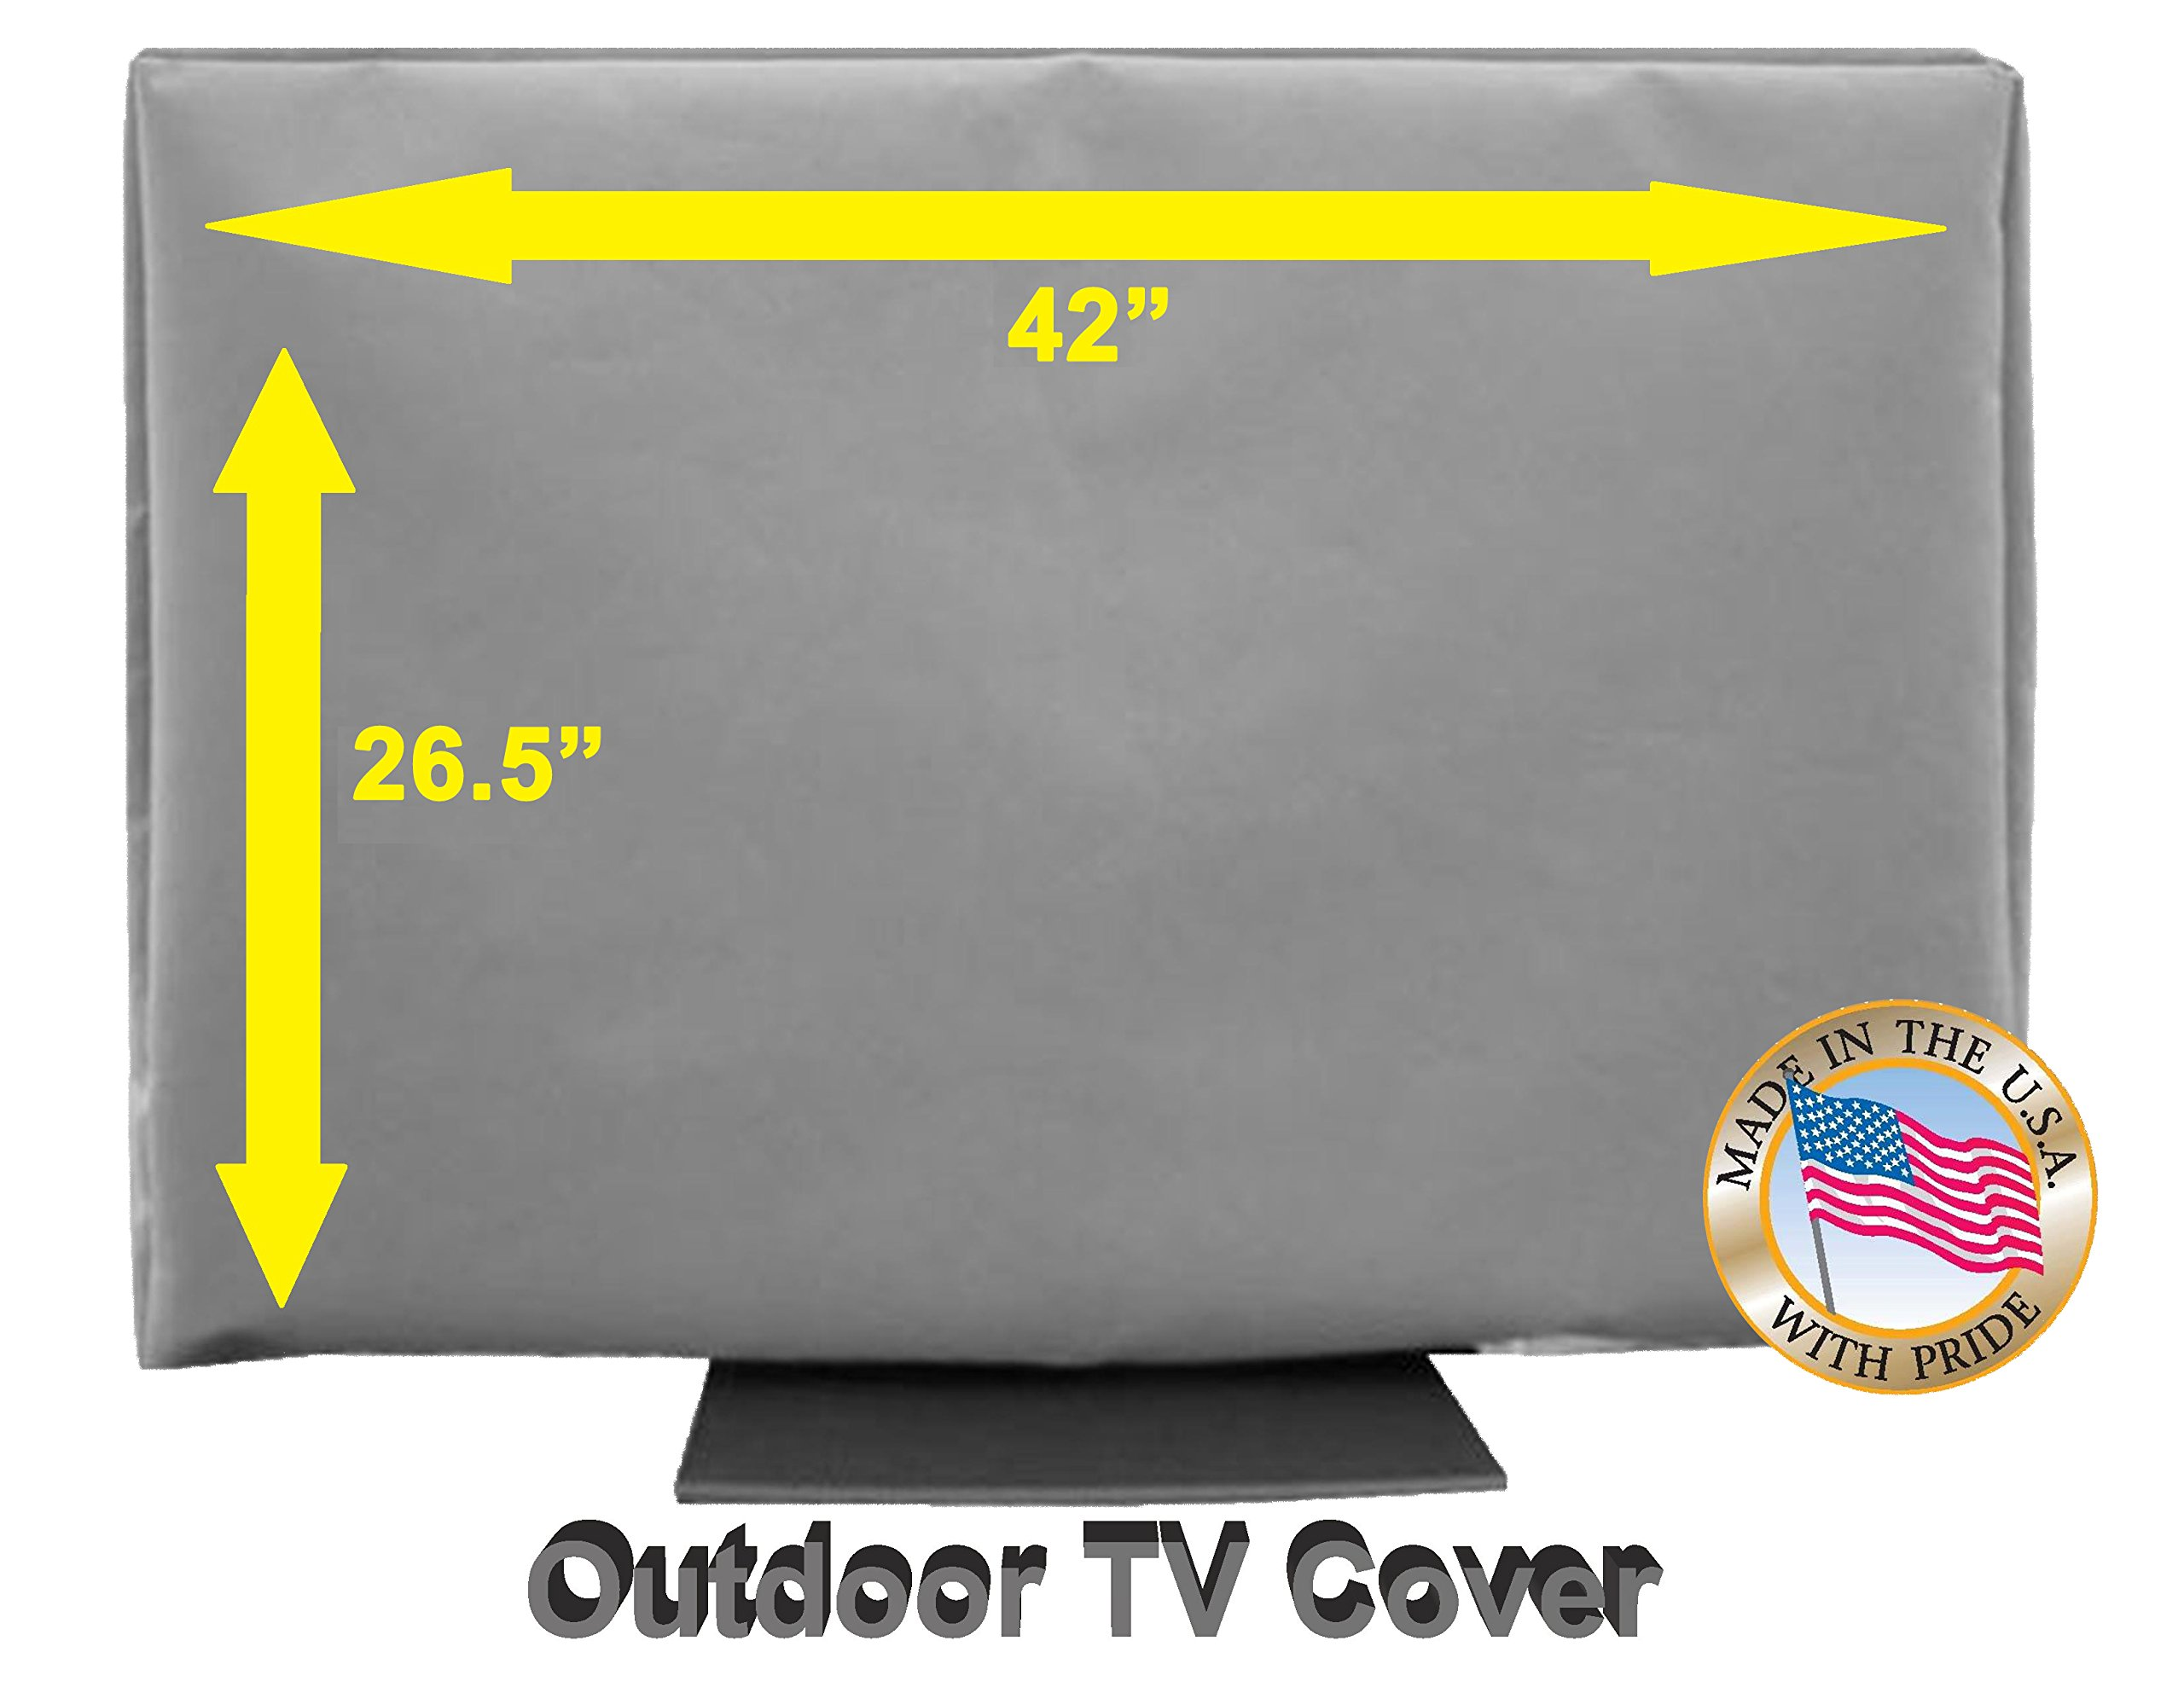 42'' Outdoor TV Cover *Top Premium Quality* Weather Resistant* Soft Non Scratch Interior* Made In USA* (Televisions up to 46'')